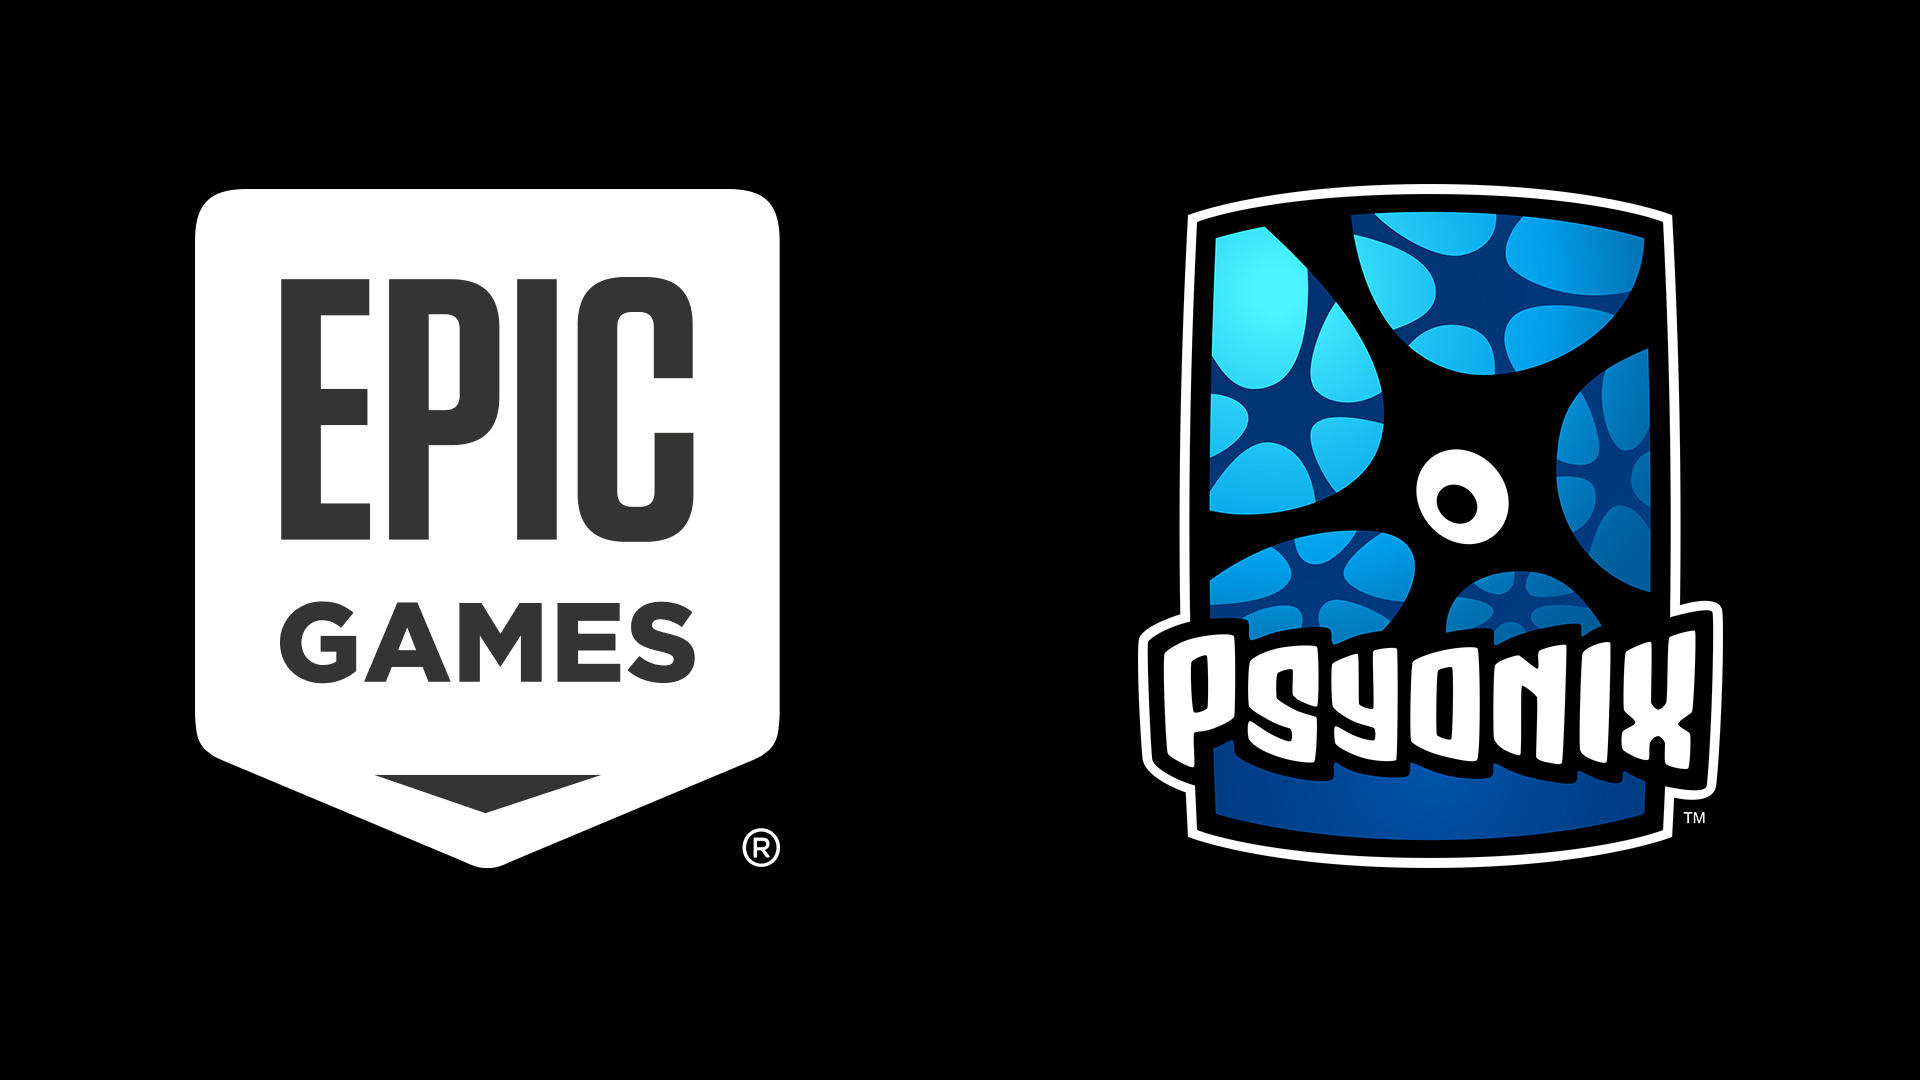 Epic Games anuncia compra da Psyonix, desenvolvedora do hit Rocket League